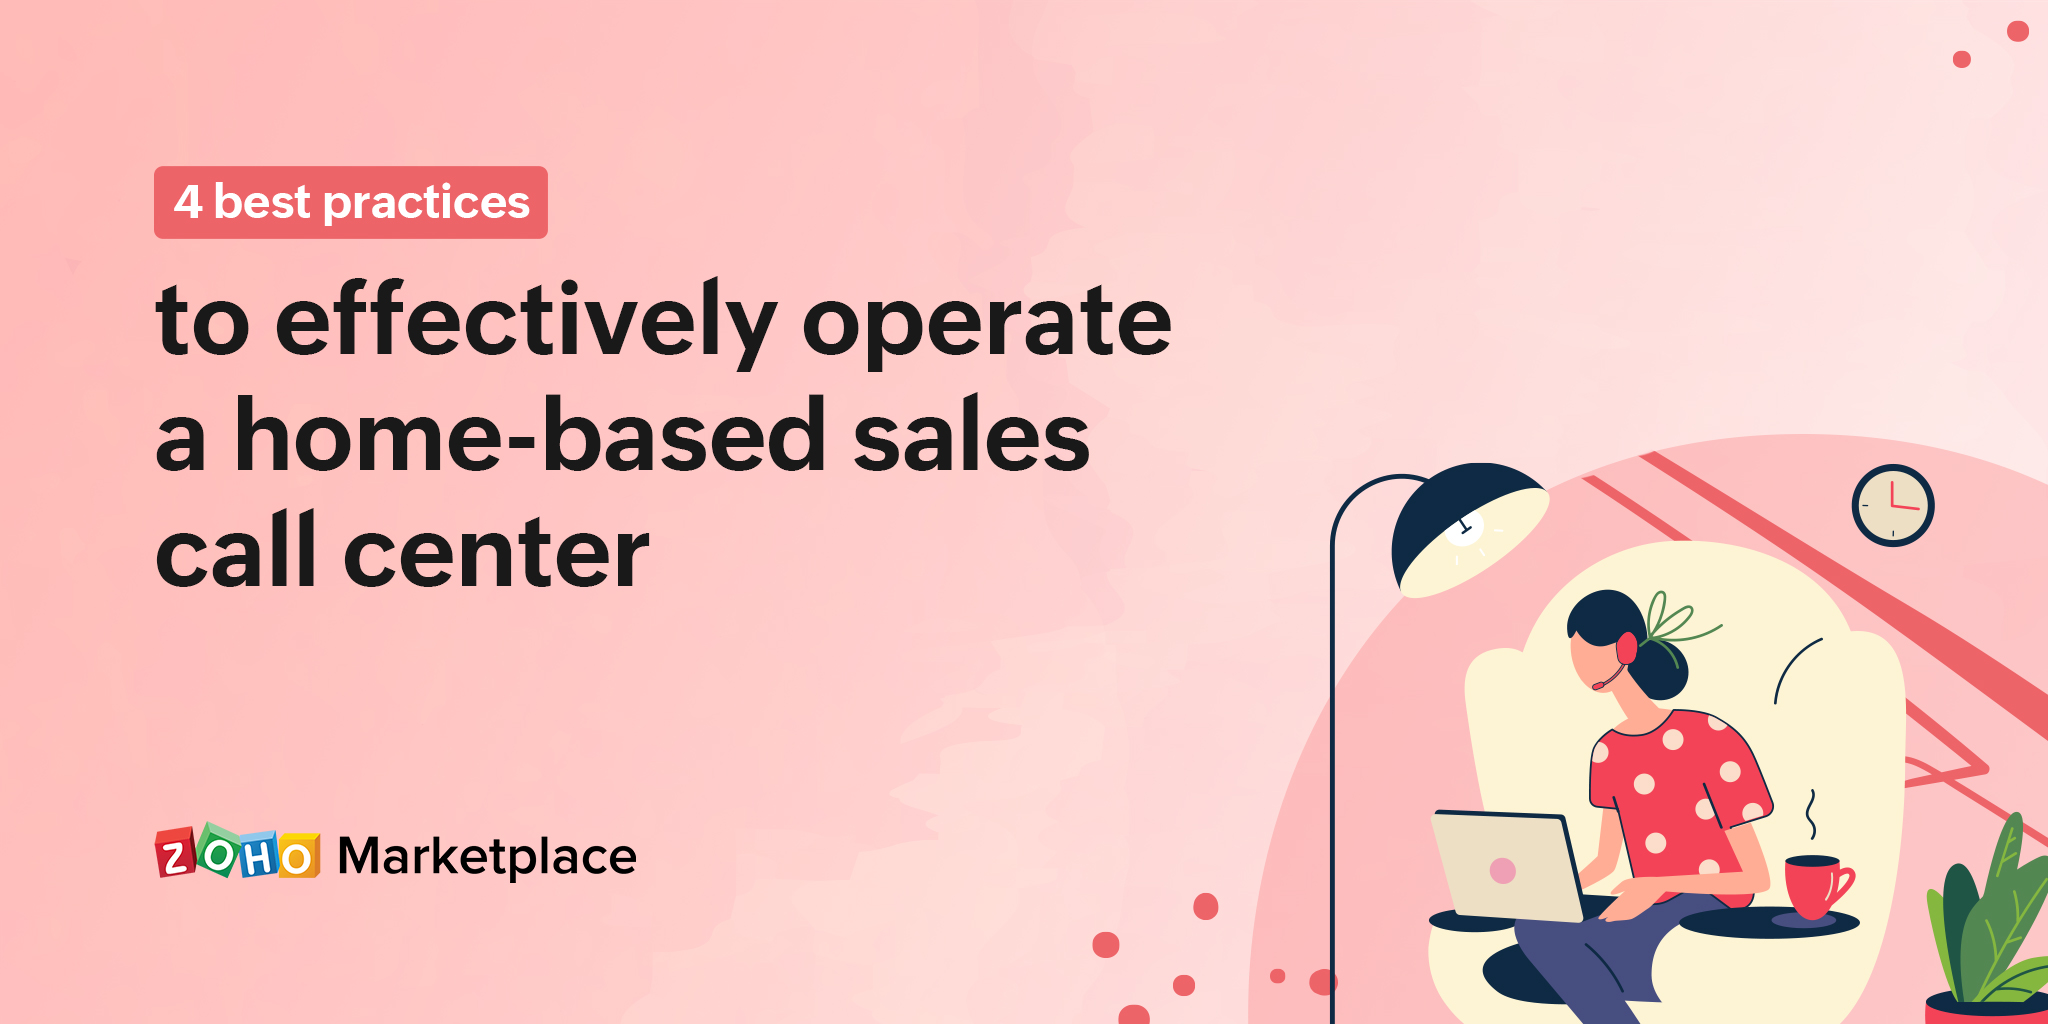 Best practices: 4 ways to effectively operate a home-based sales call center